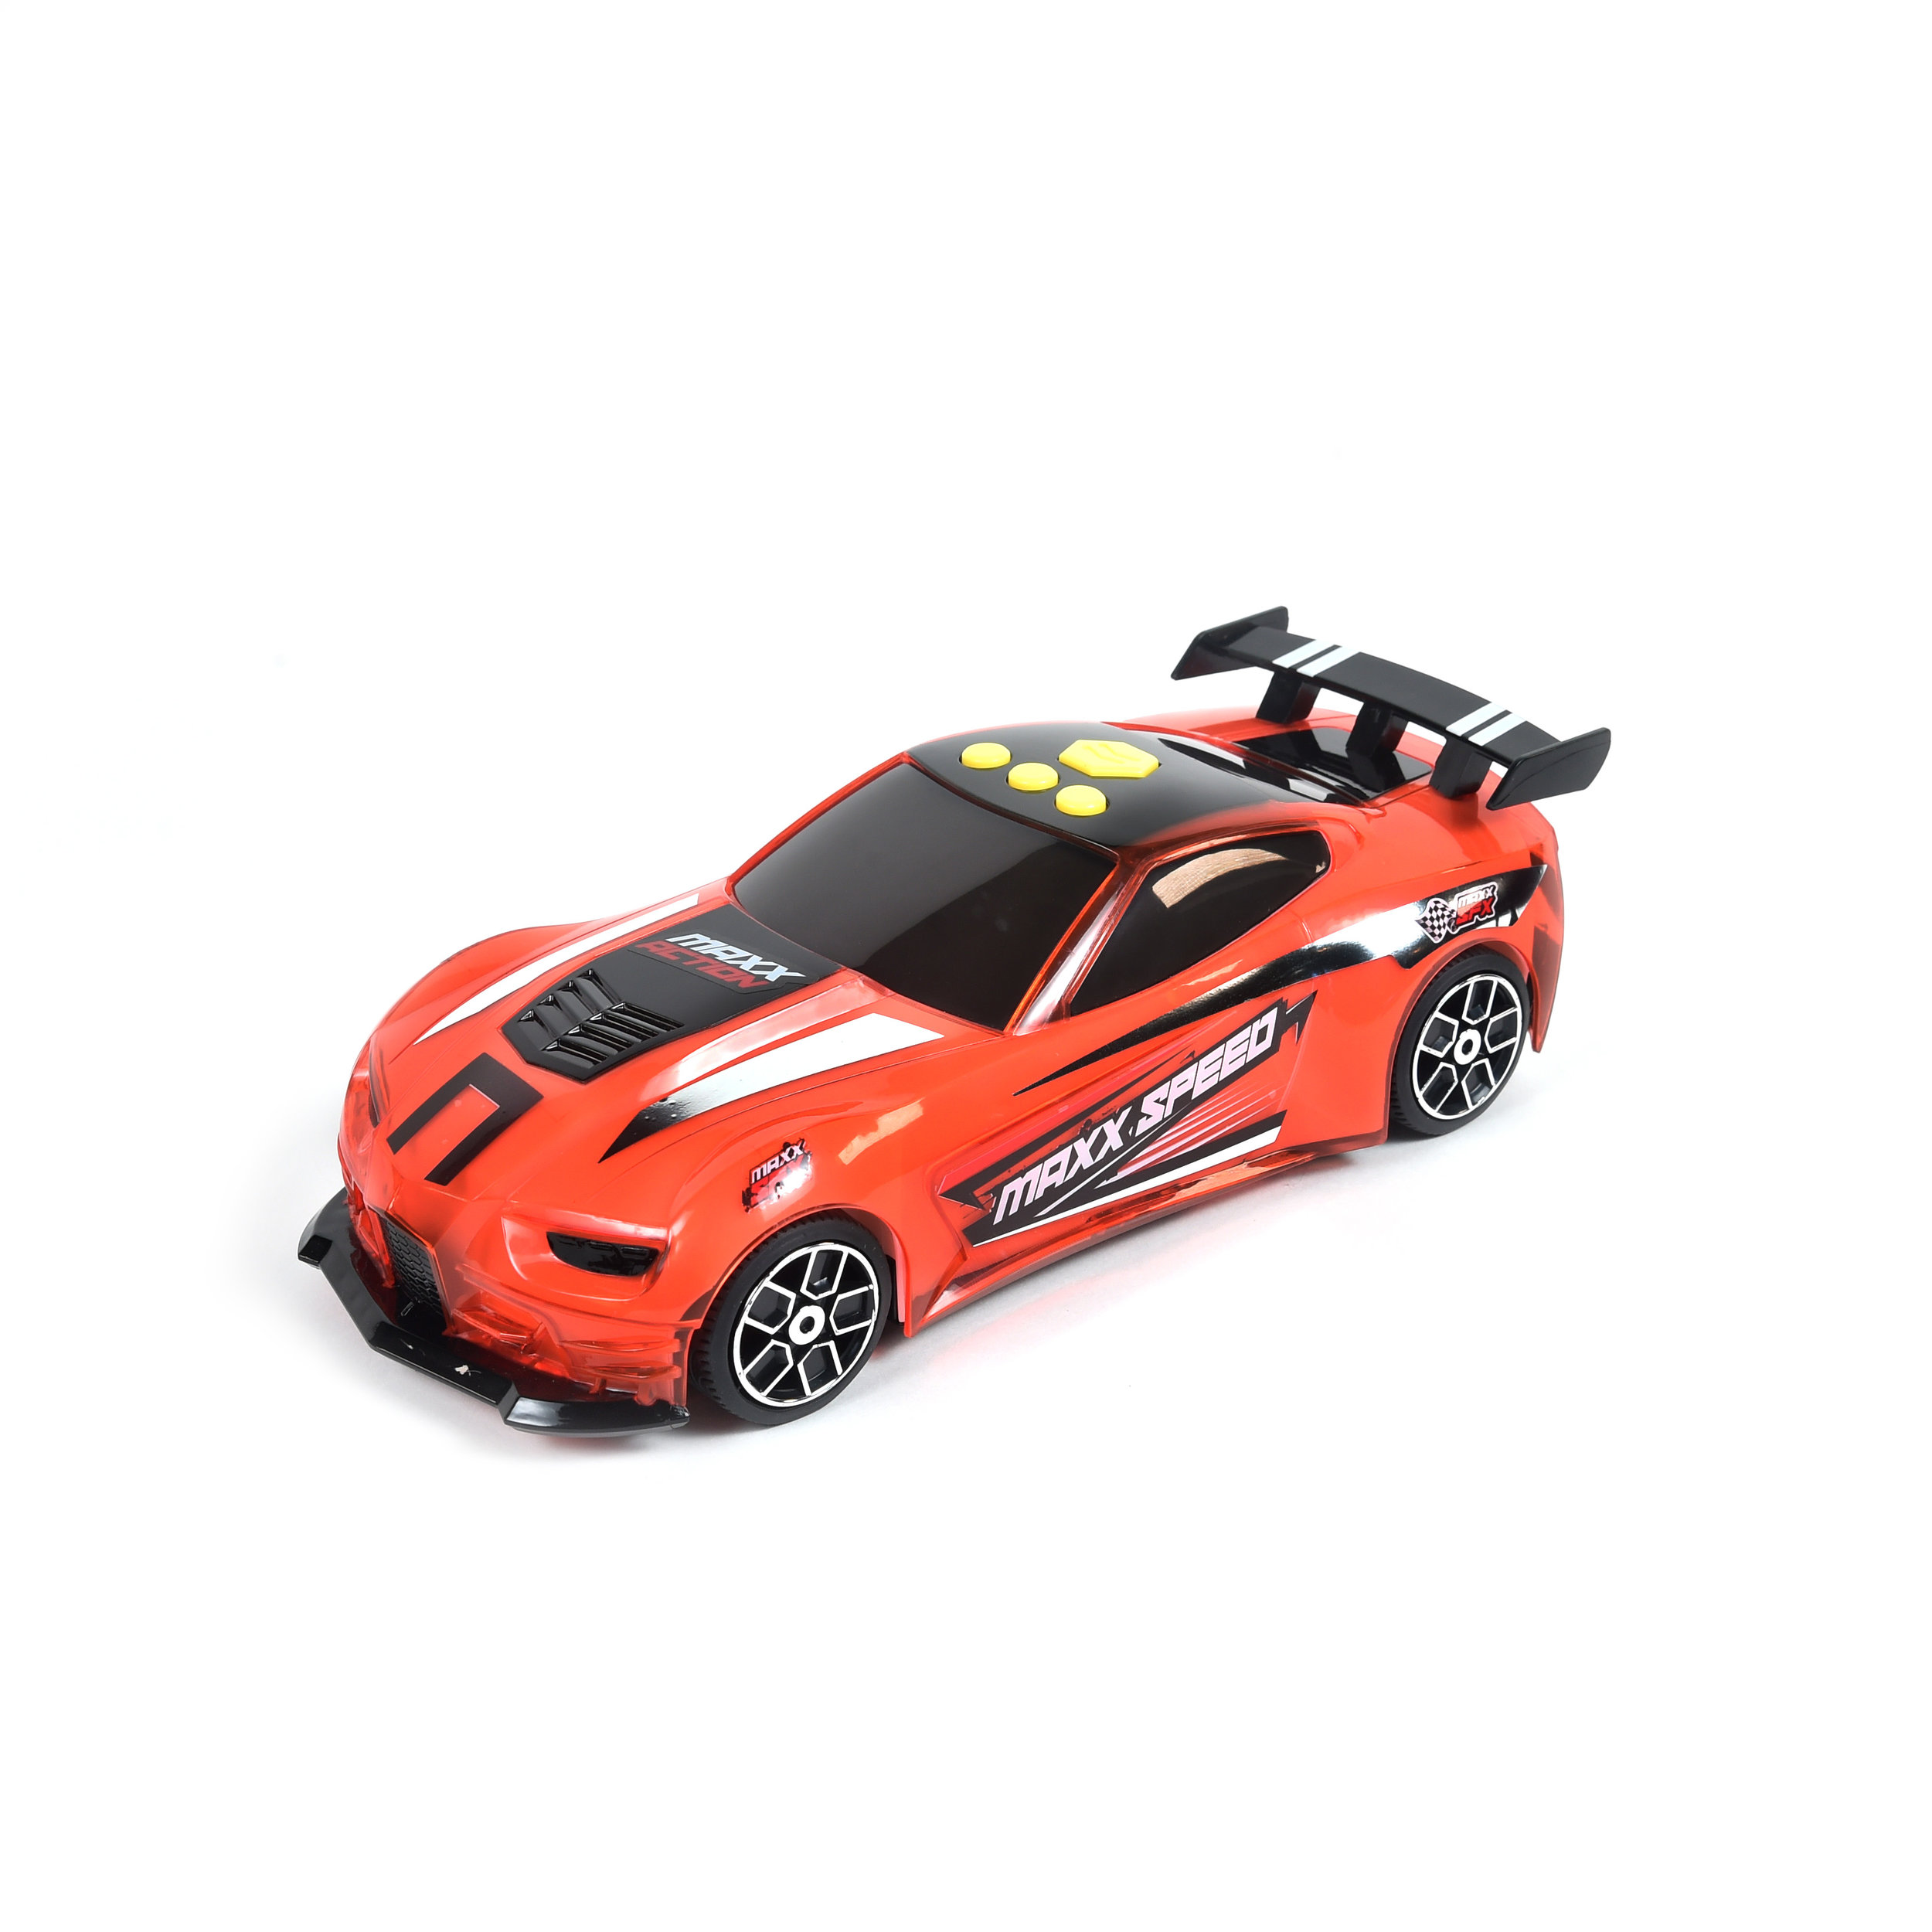 Maxx Action Sports Racing Vehicle